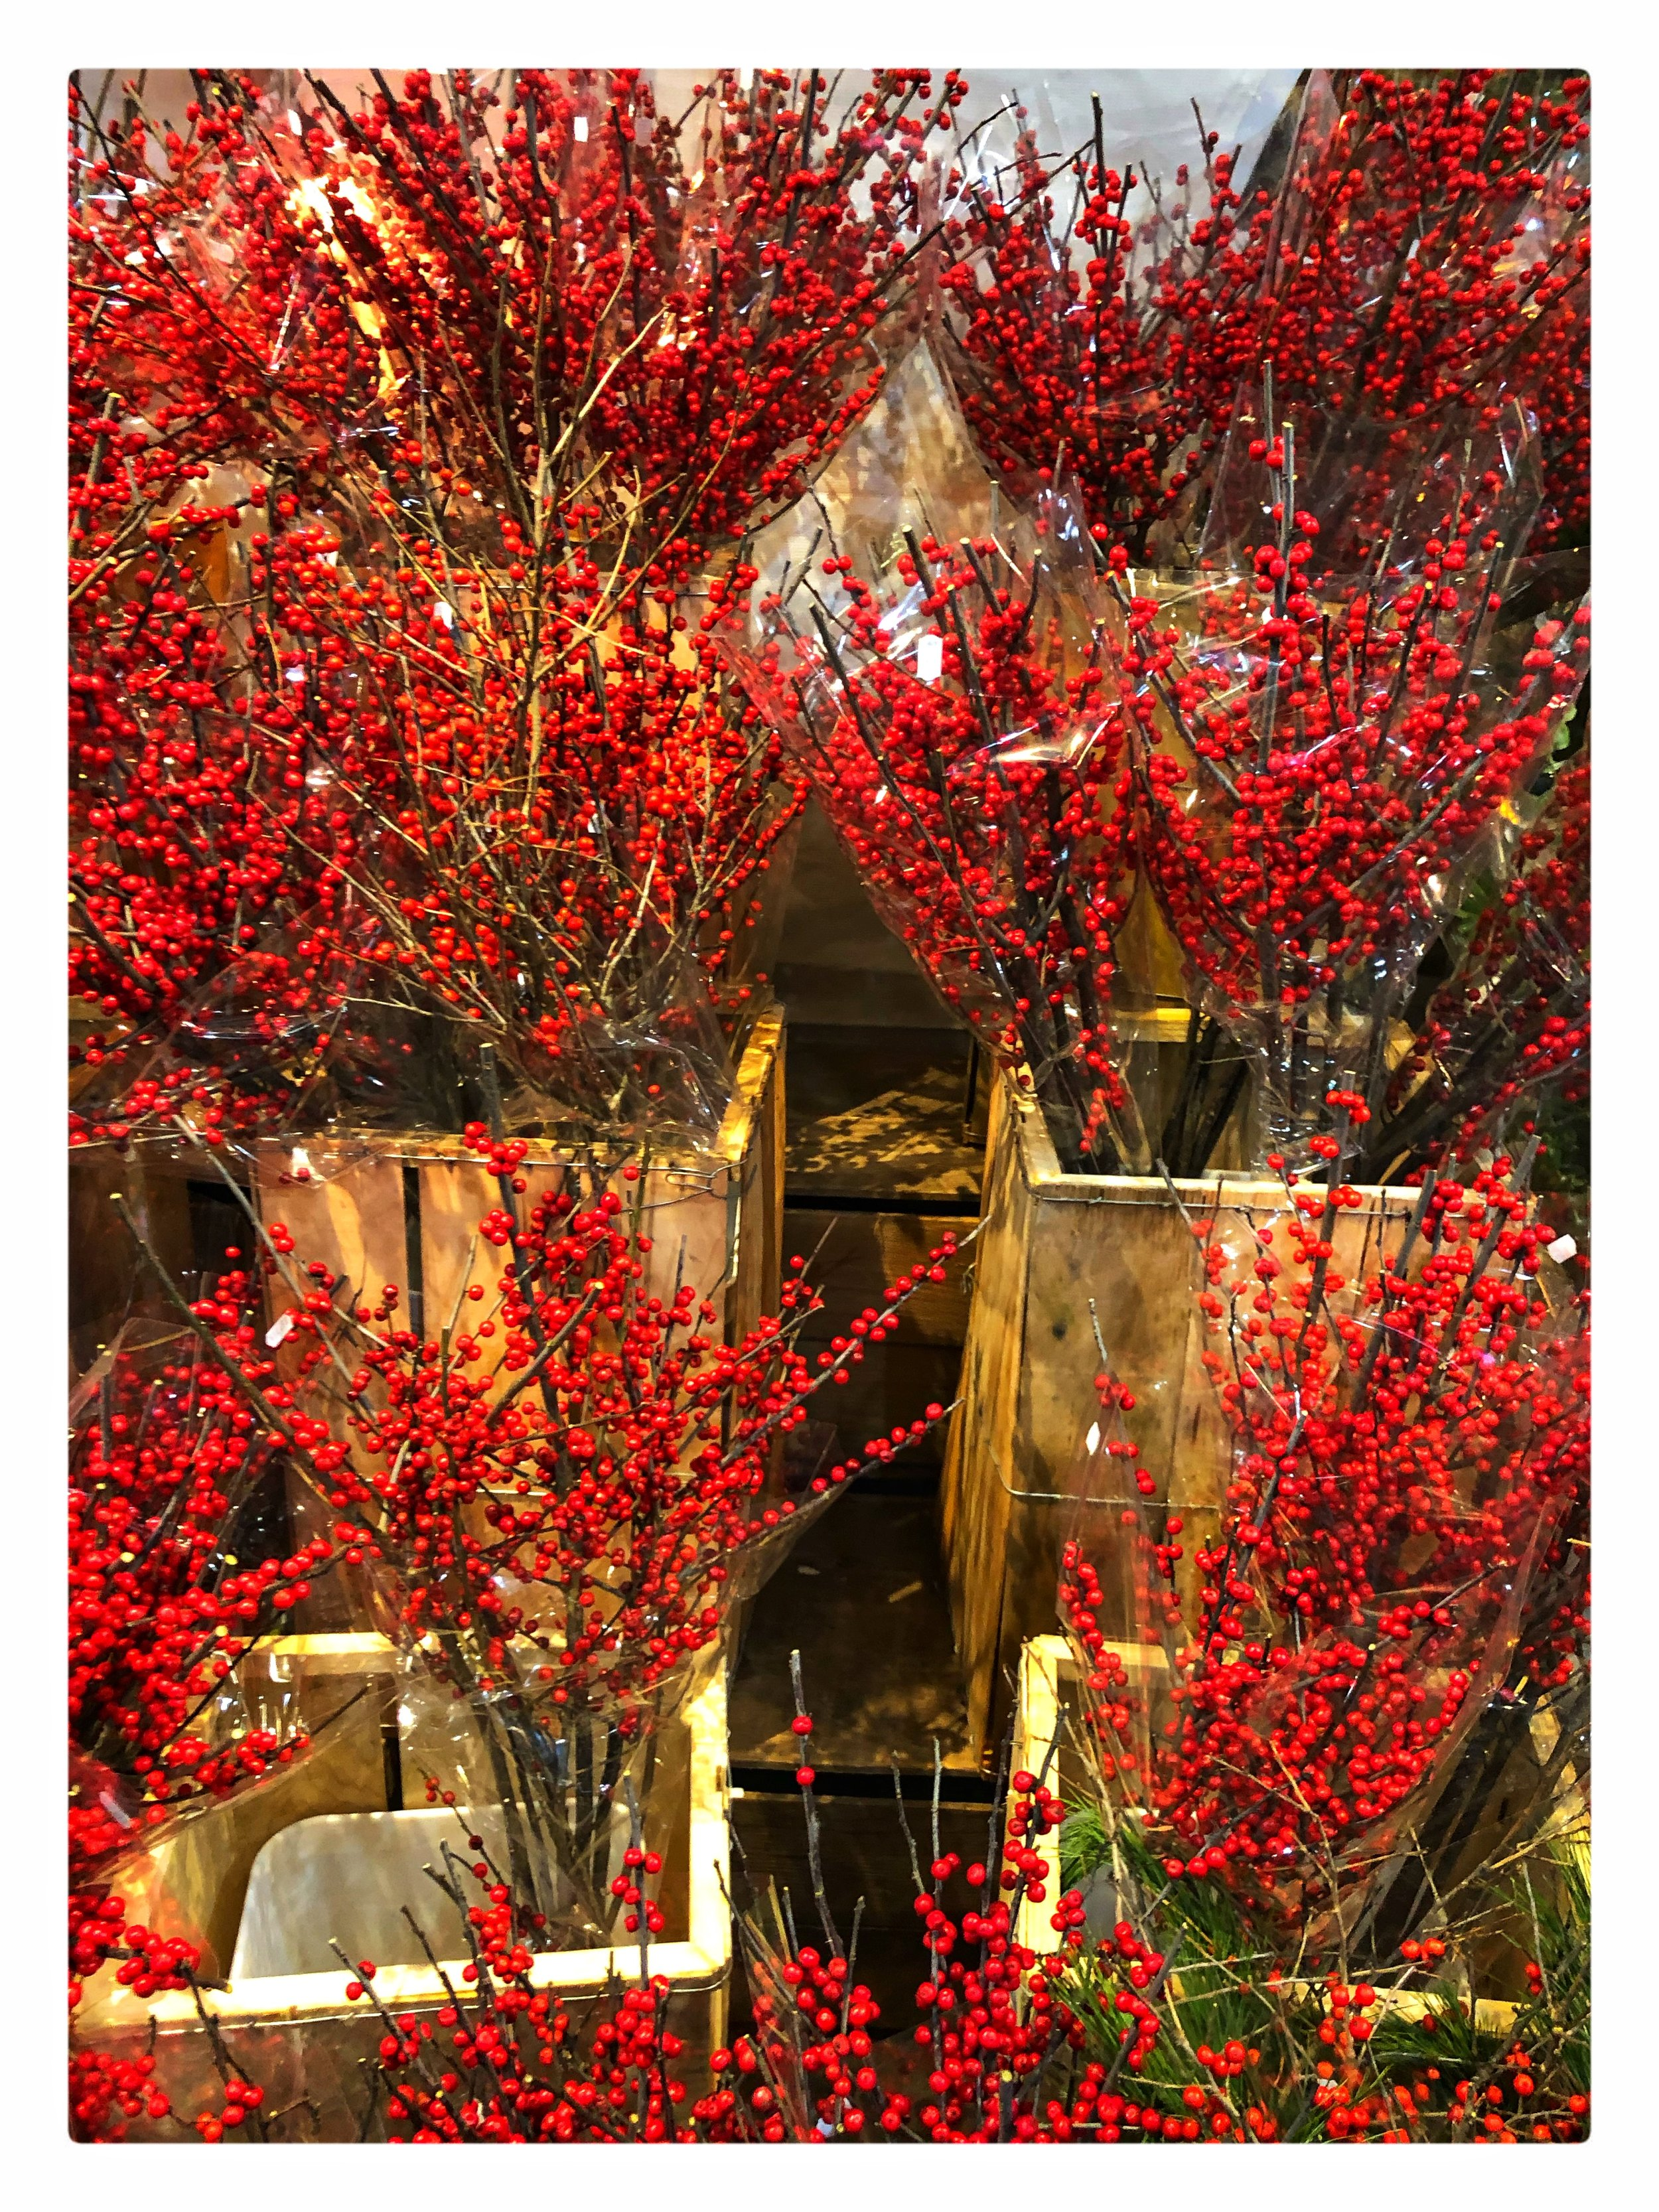 These locally-grown bright Winterberries with stems are beautiful and festive in your home!